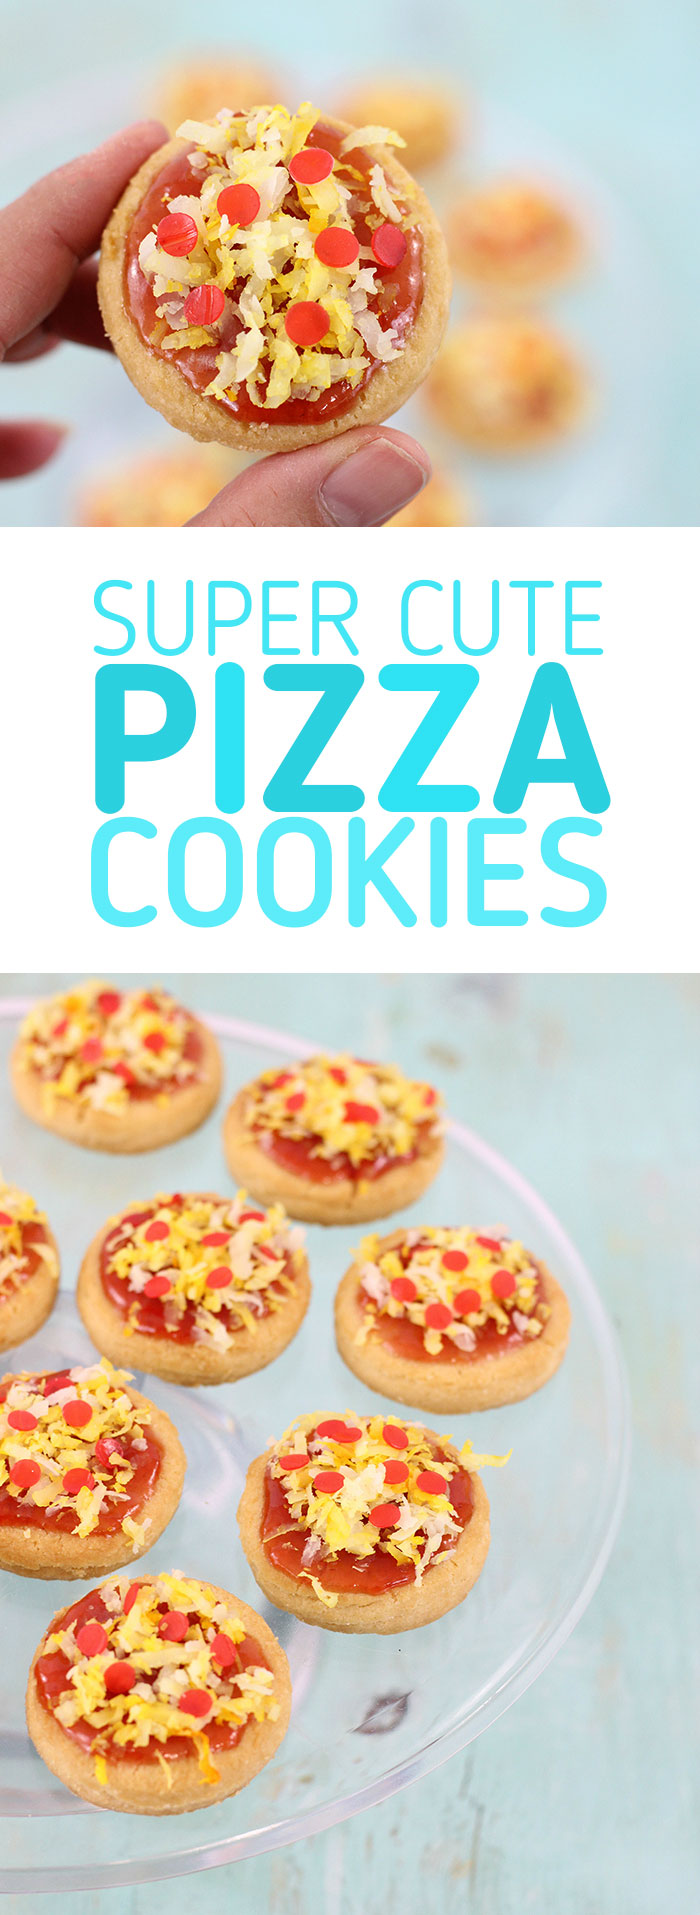 Pizza Cookies! This pizza cookie recipe is so easy using store bought cookies, jam, coconut. Not only are they adorable, but they are delicious too. Perfect for Teenage Mutant Ninja Turtle Themed Parties!